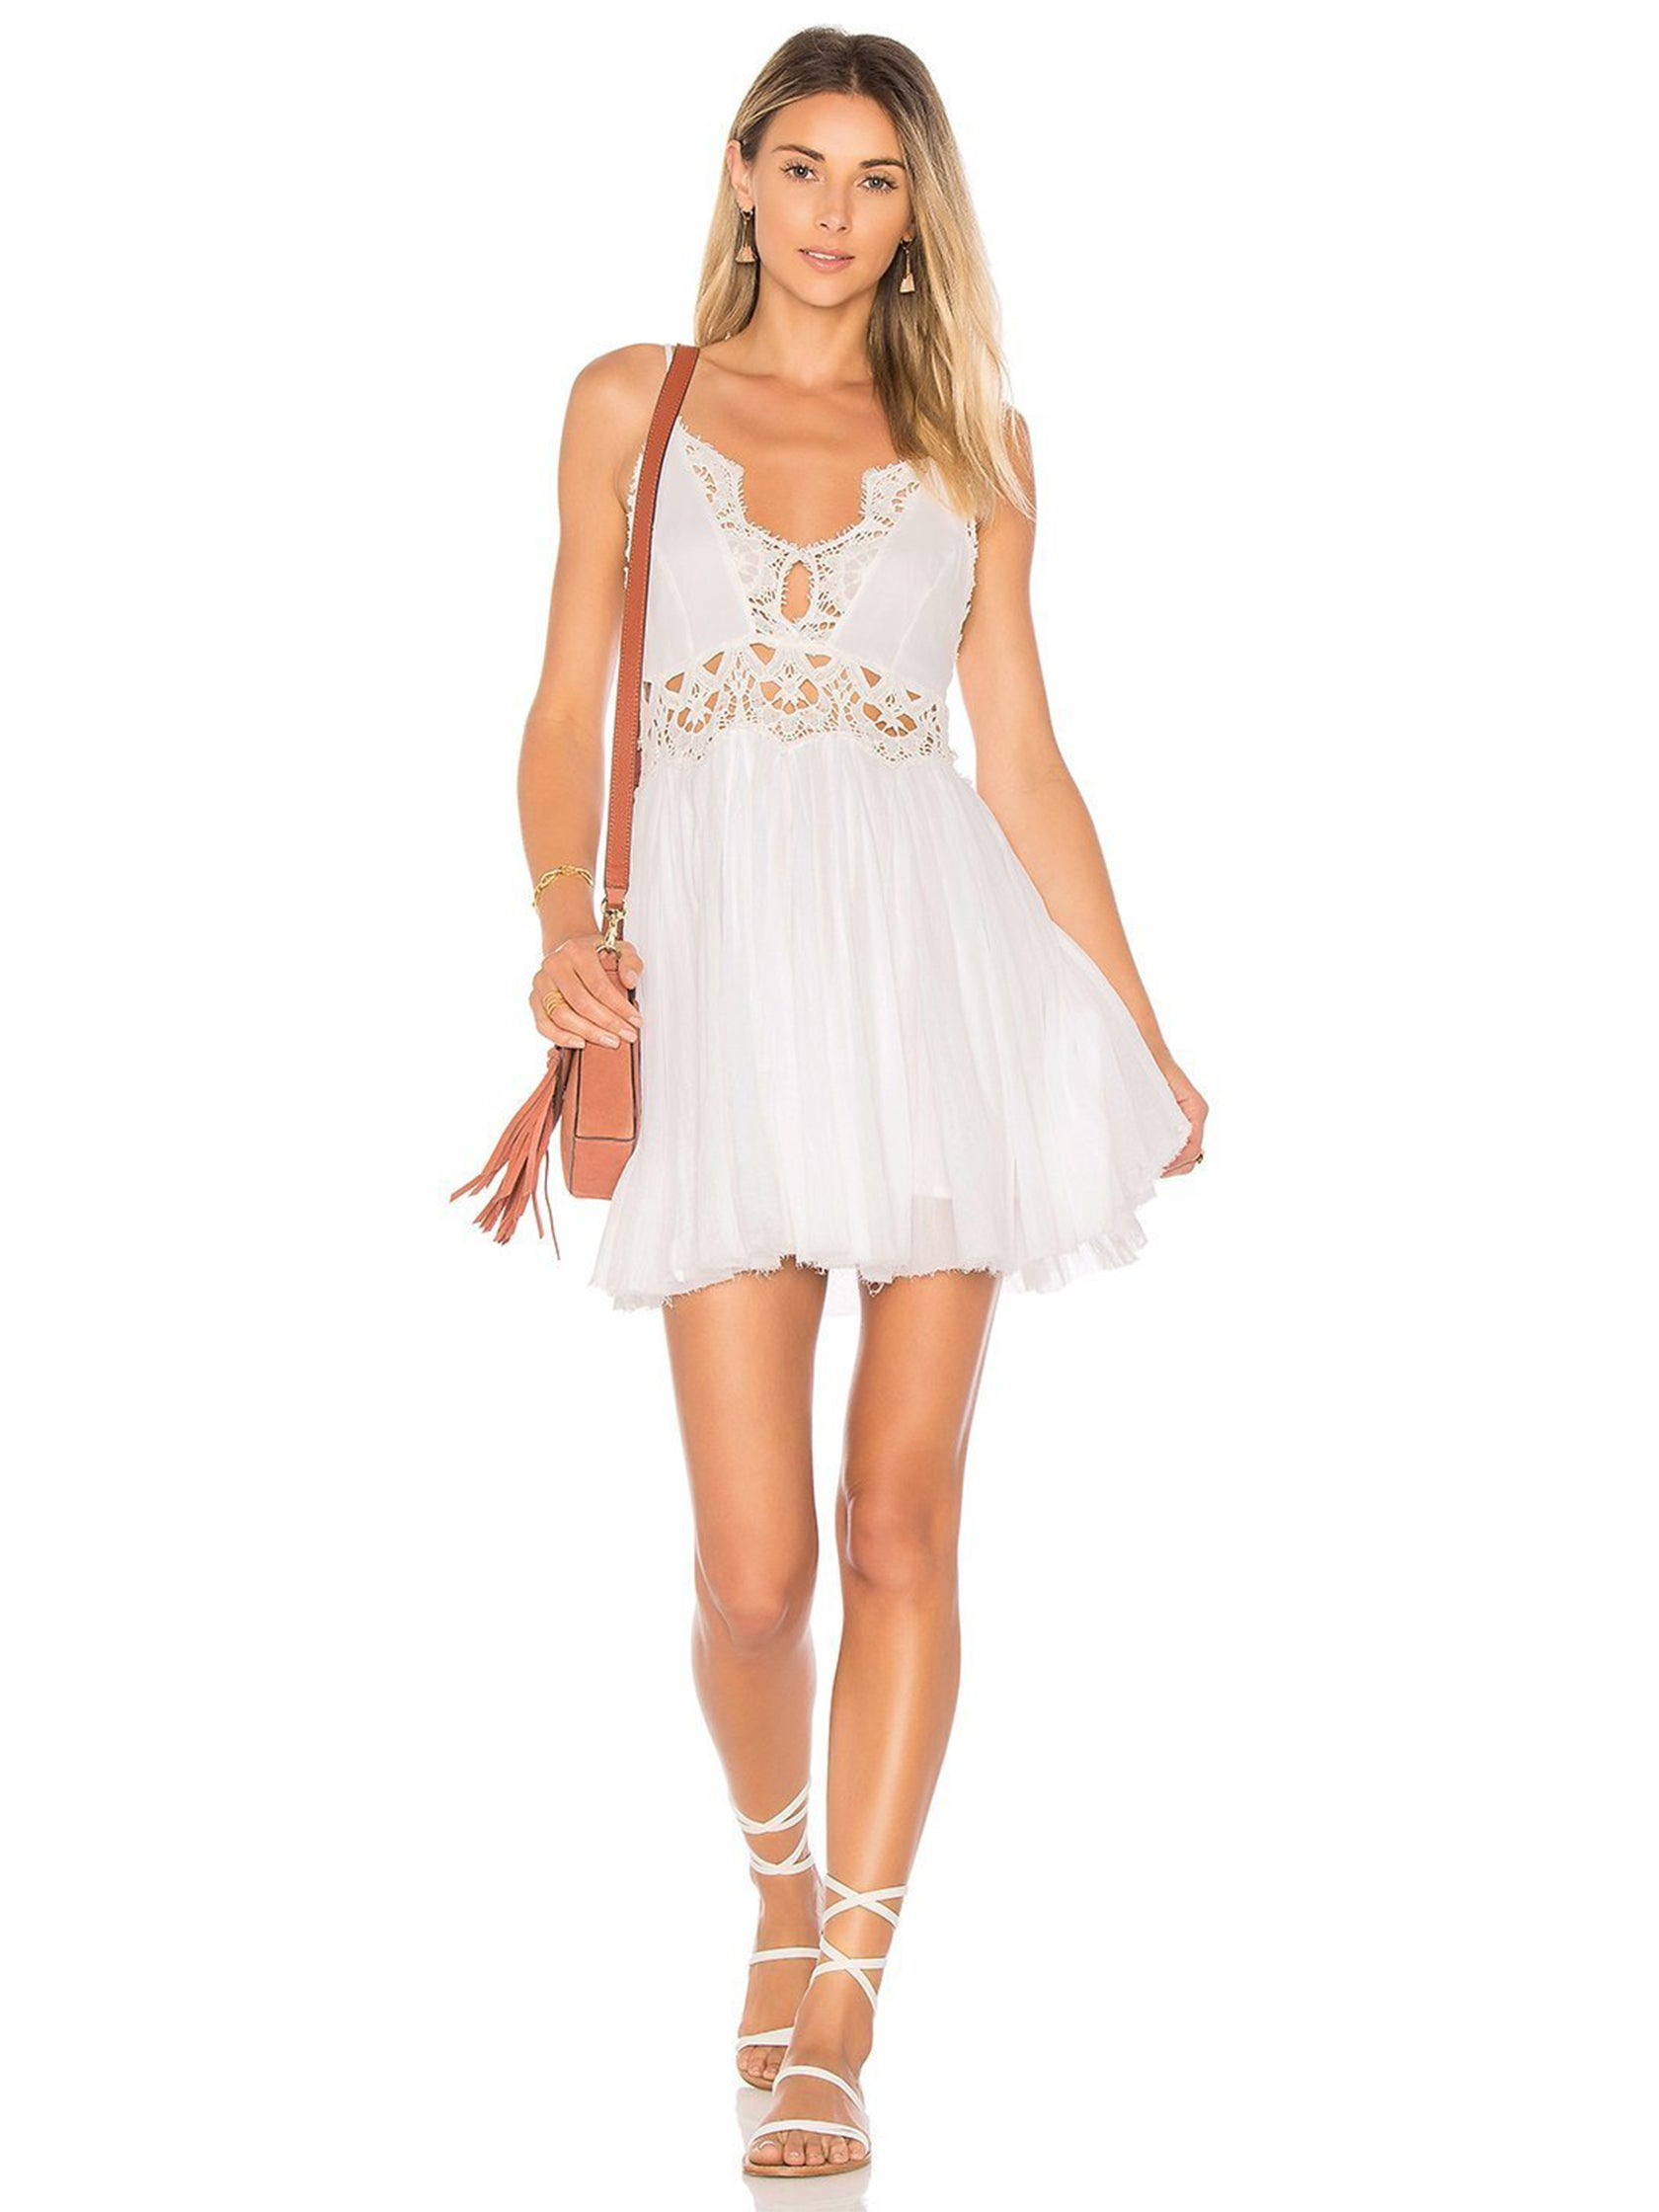 52be4219a Girl outfit in a dress rental from Free People called Ilektra Mini Dress